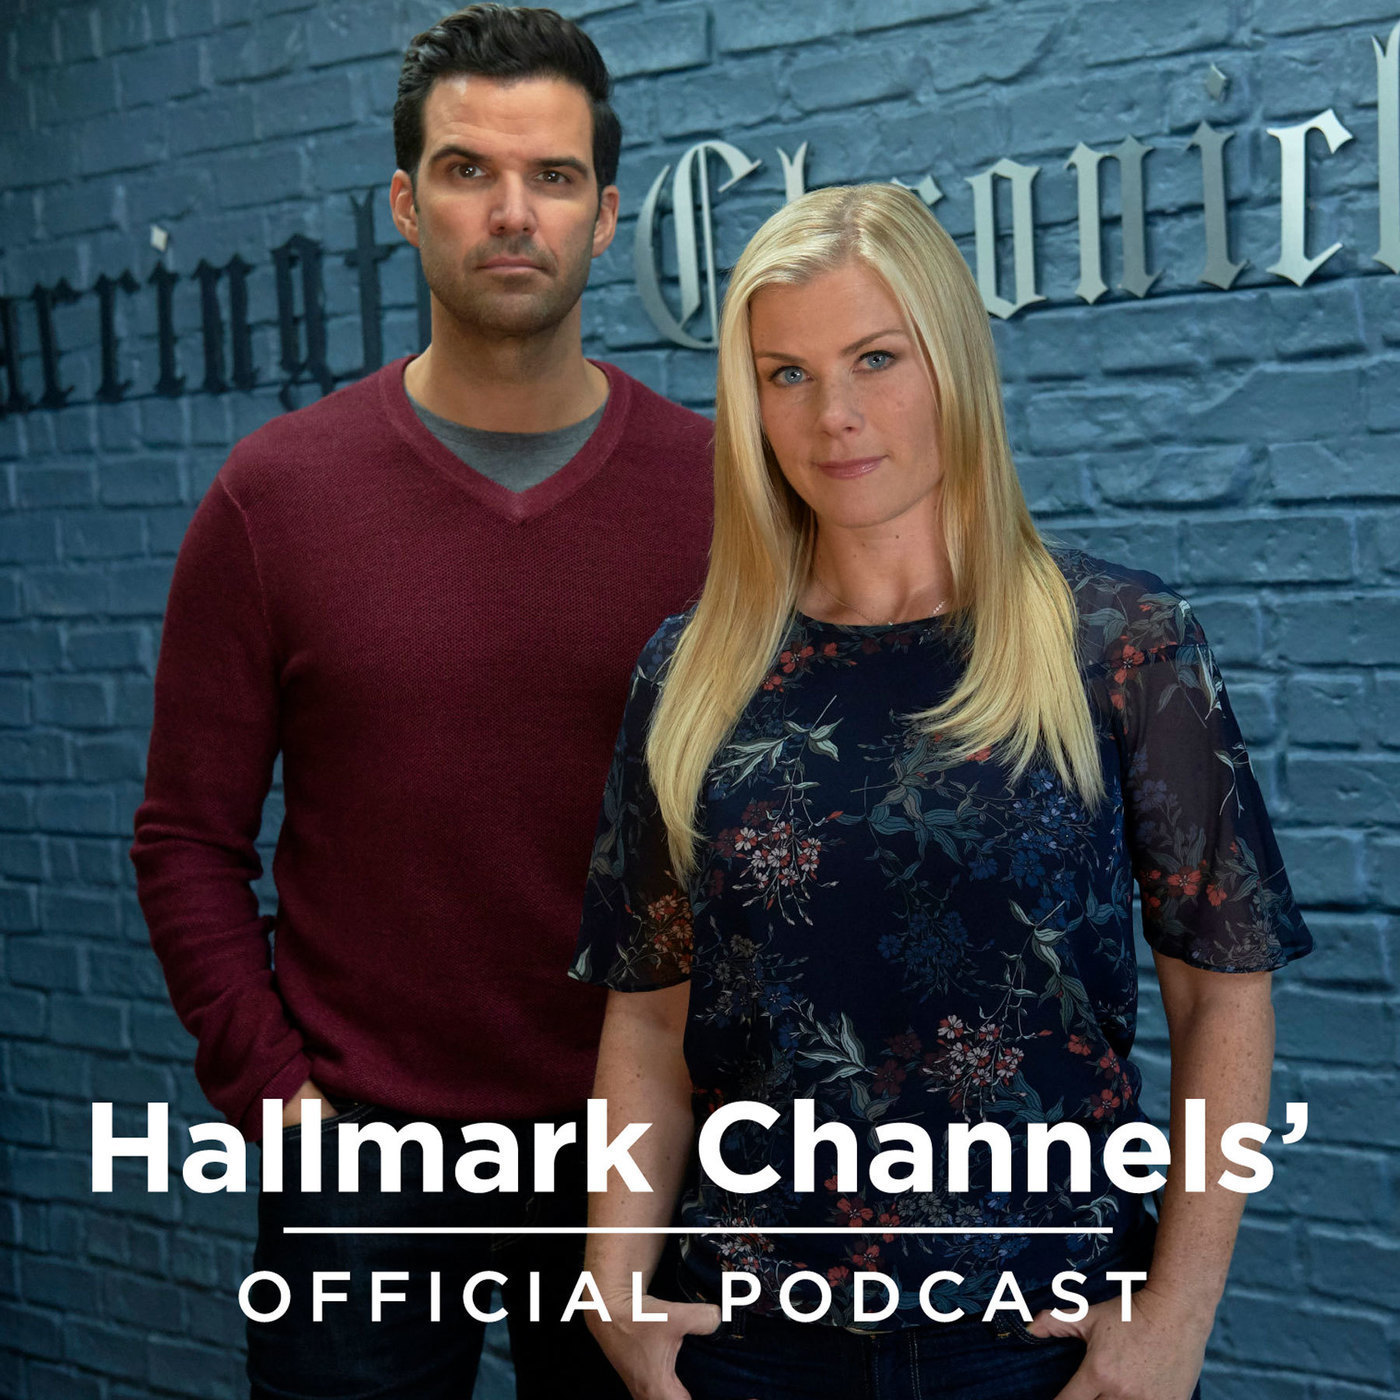 Hallmark Channels' Official Podcast: The Chronicle Mysteries